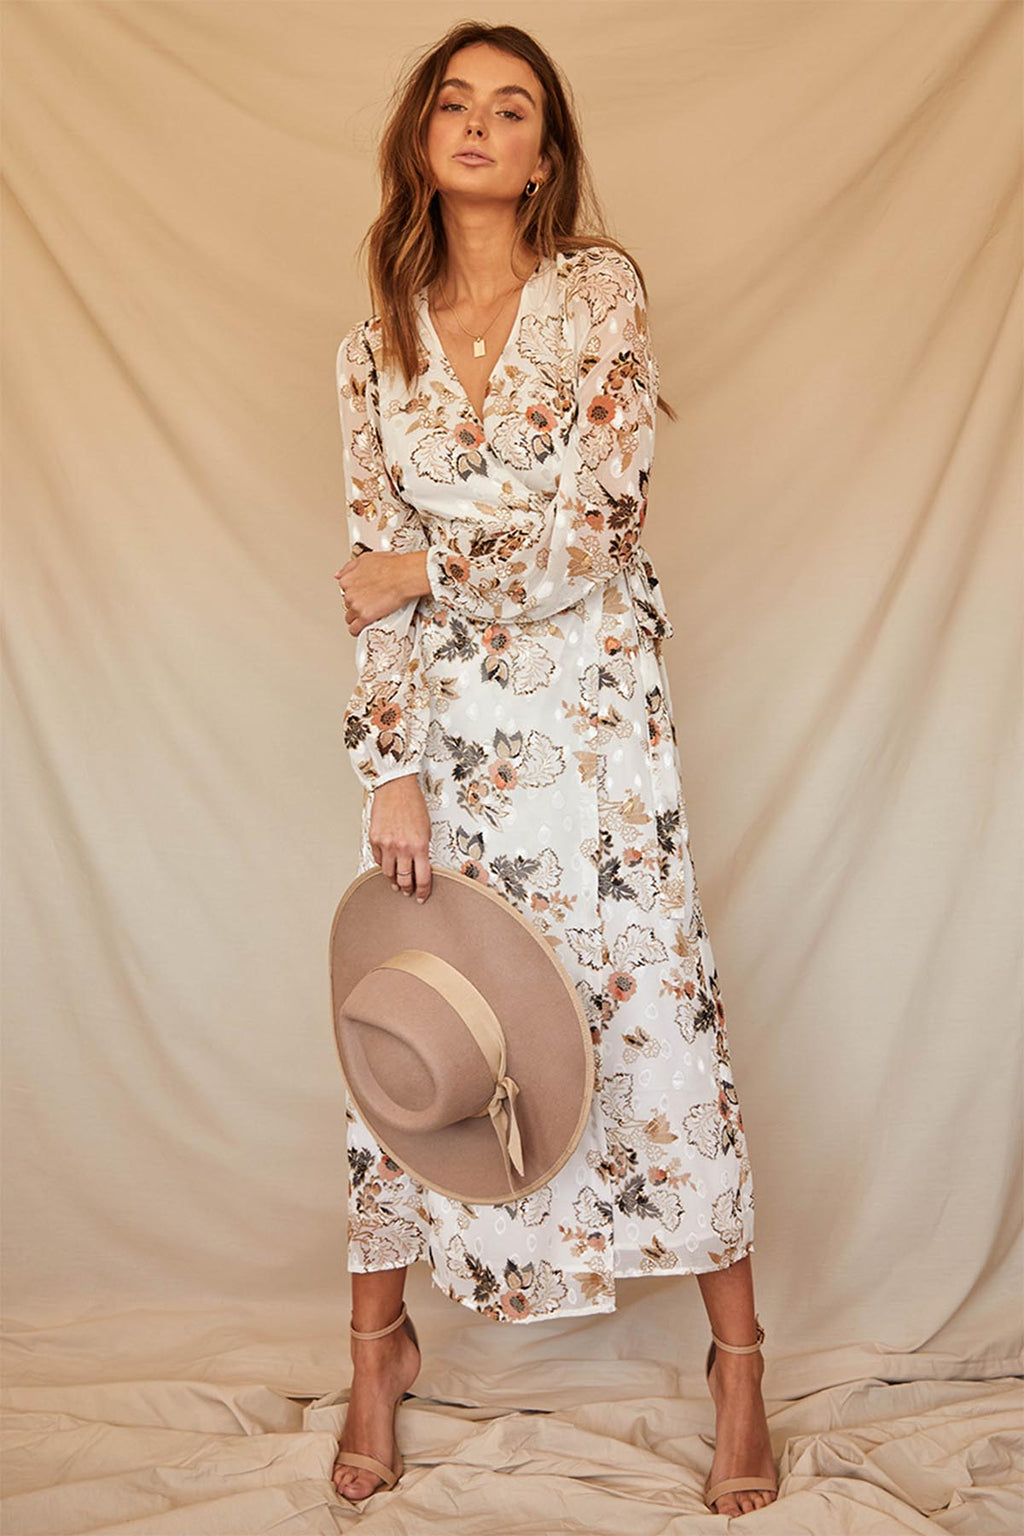 Halenne Floral Maxi Dress - White - The Bohemian Corner